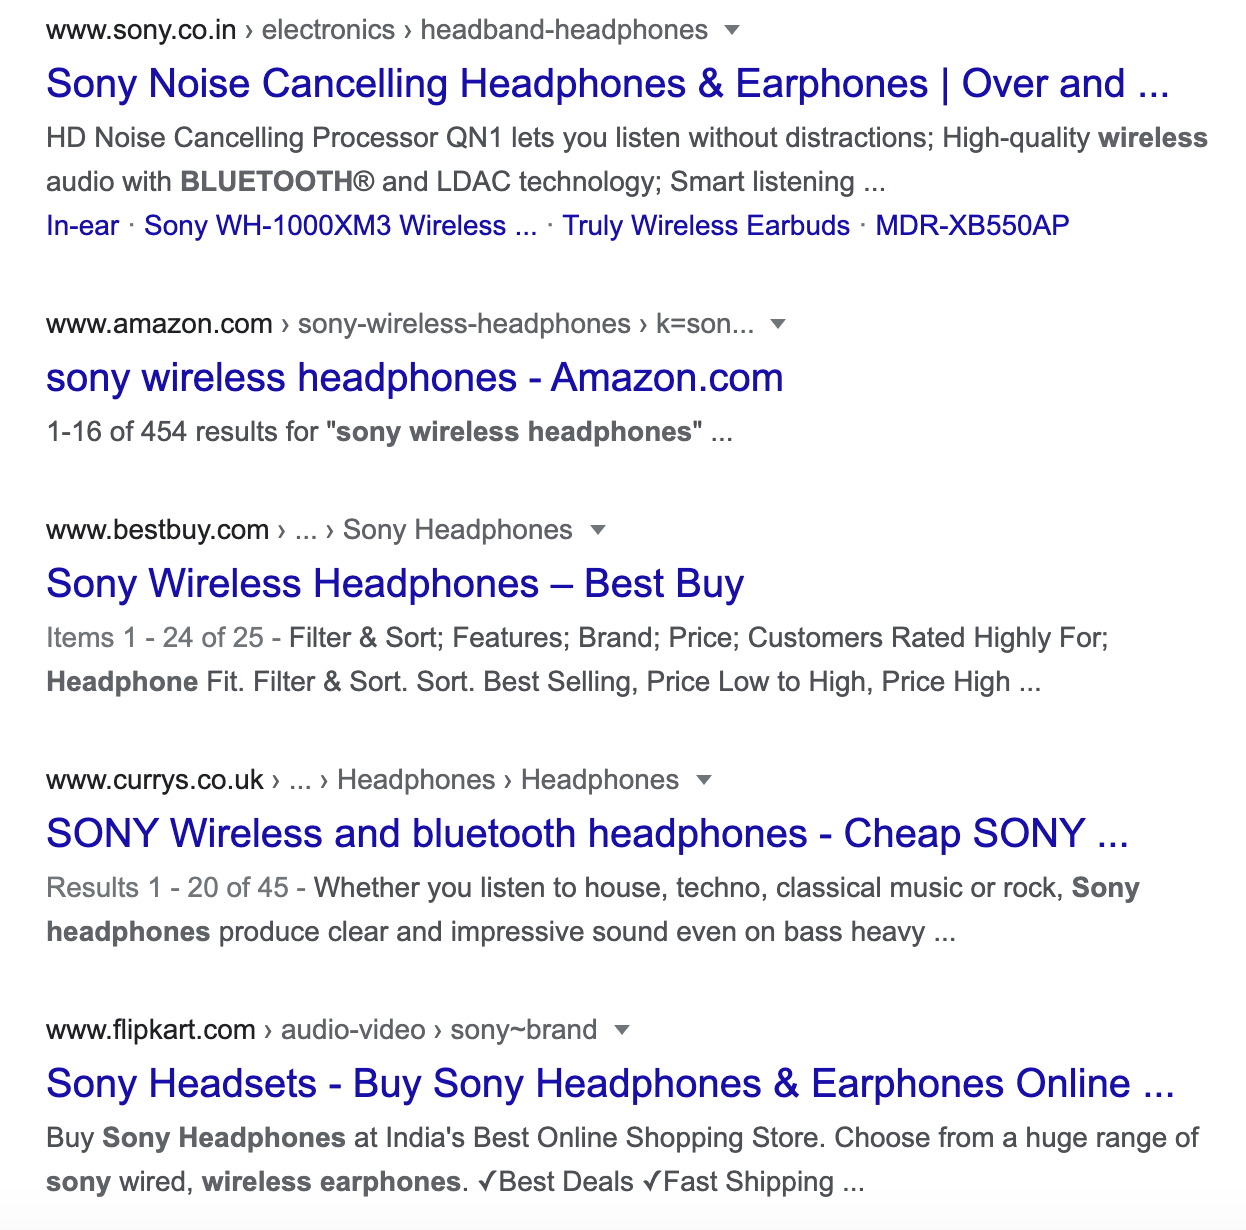 SERP for wireless headphones sony query